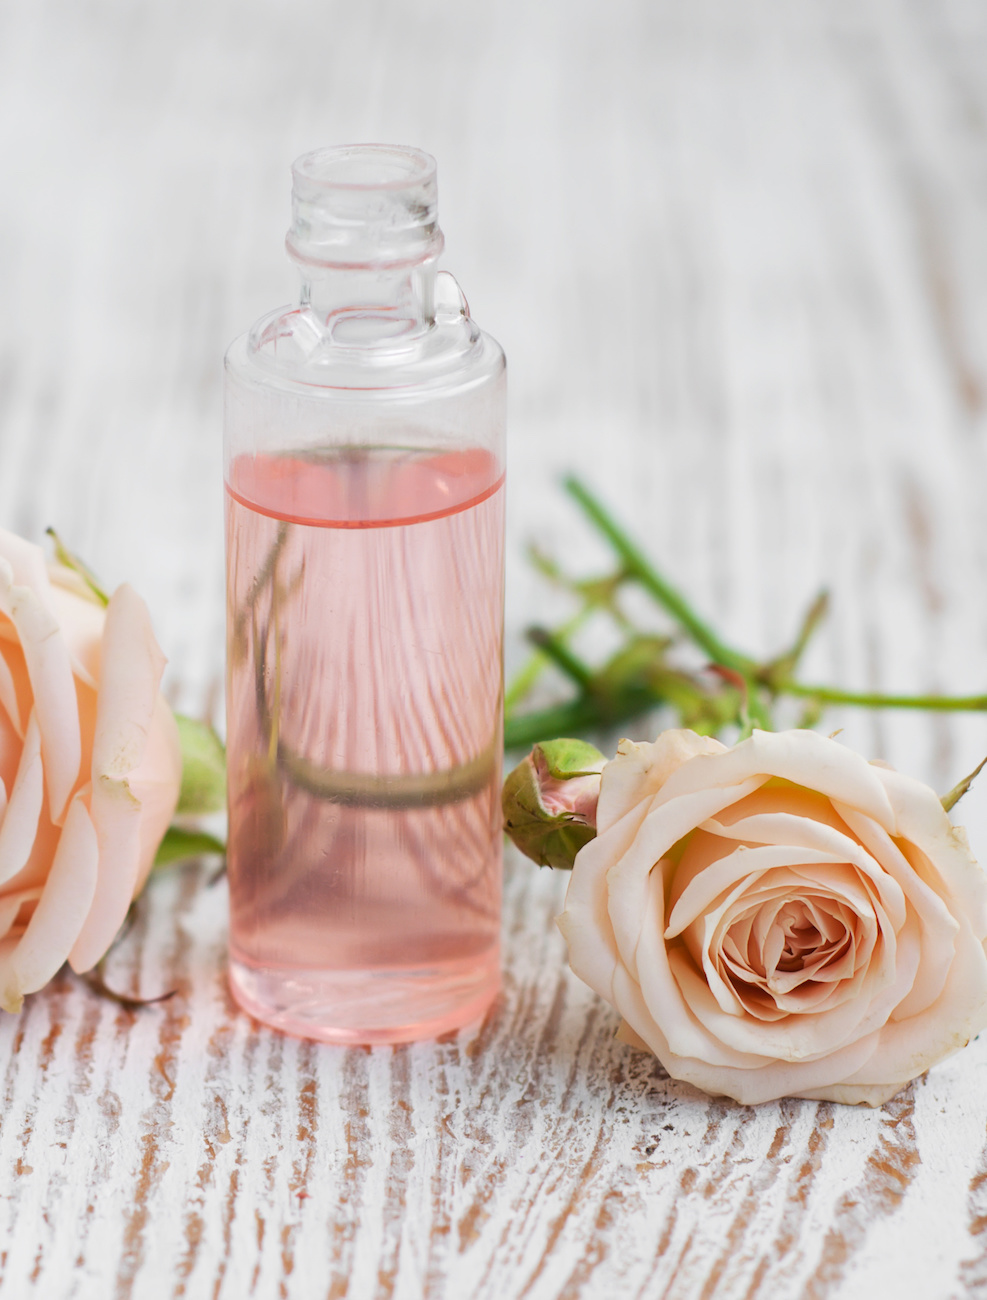 Rose Water - Helps to hydrate, revitalize and moisturize the skin giving it with that refreshed look